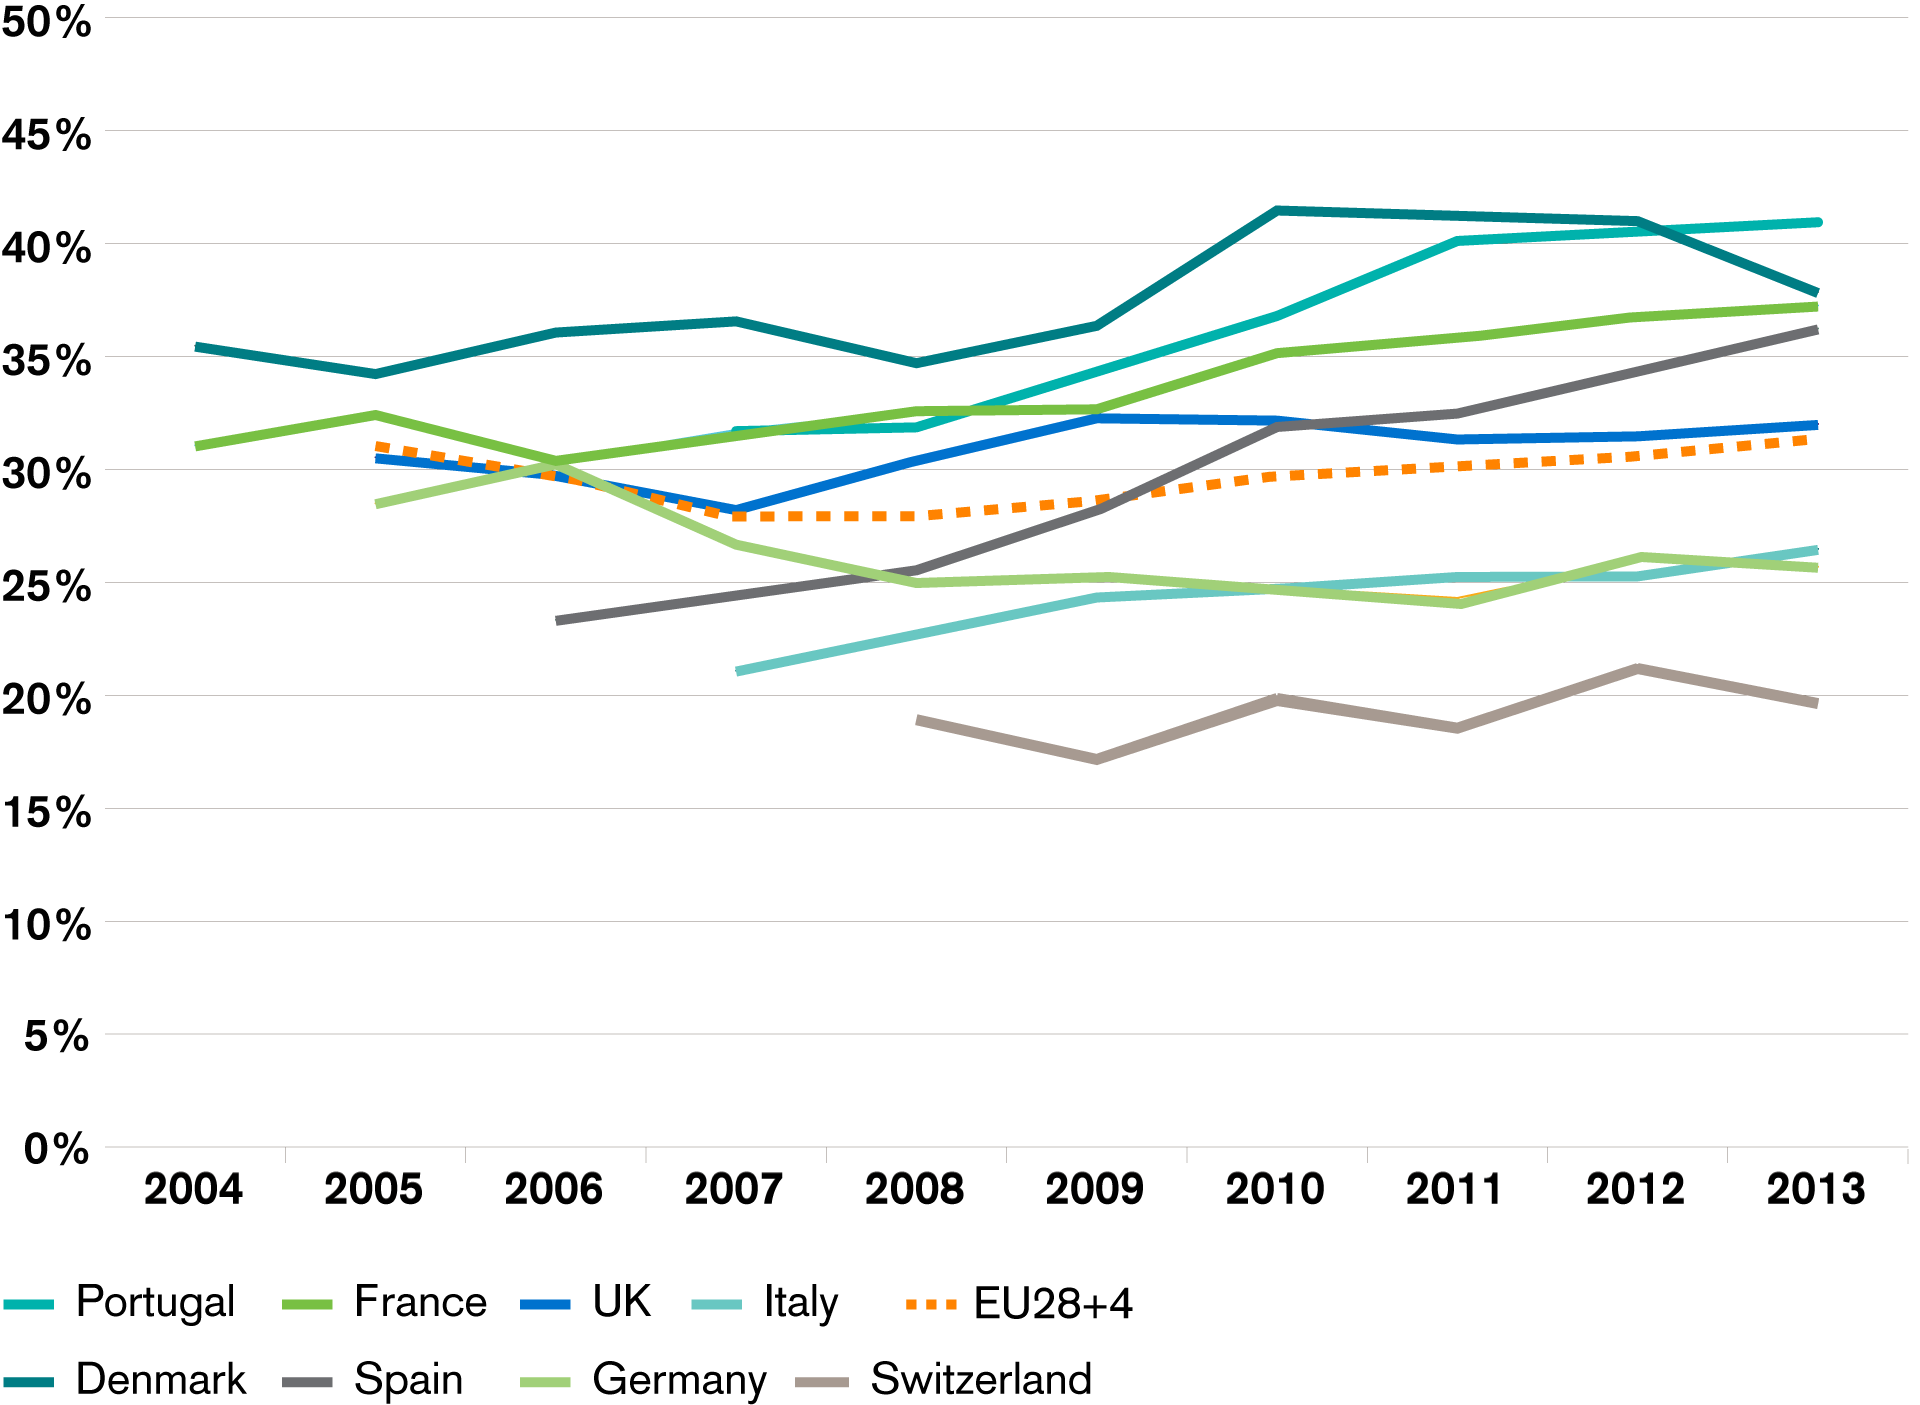 Changes in maternal breadwinning rates in selected European countries, 2004-2013